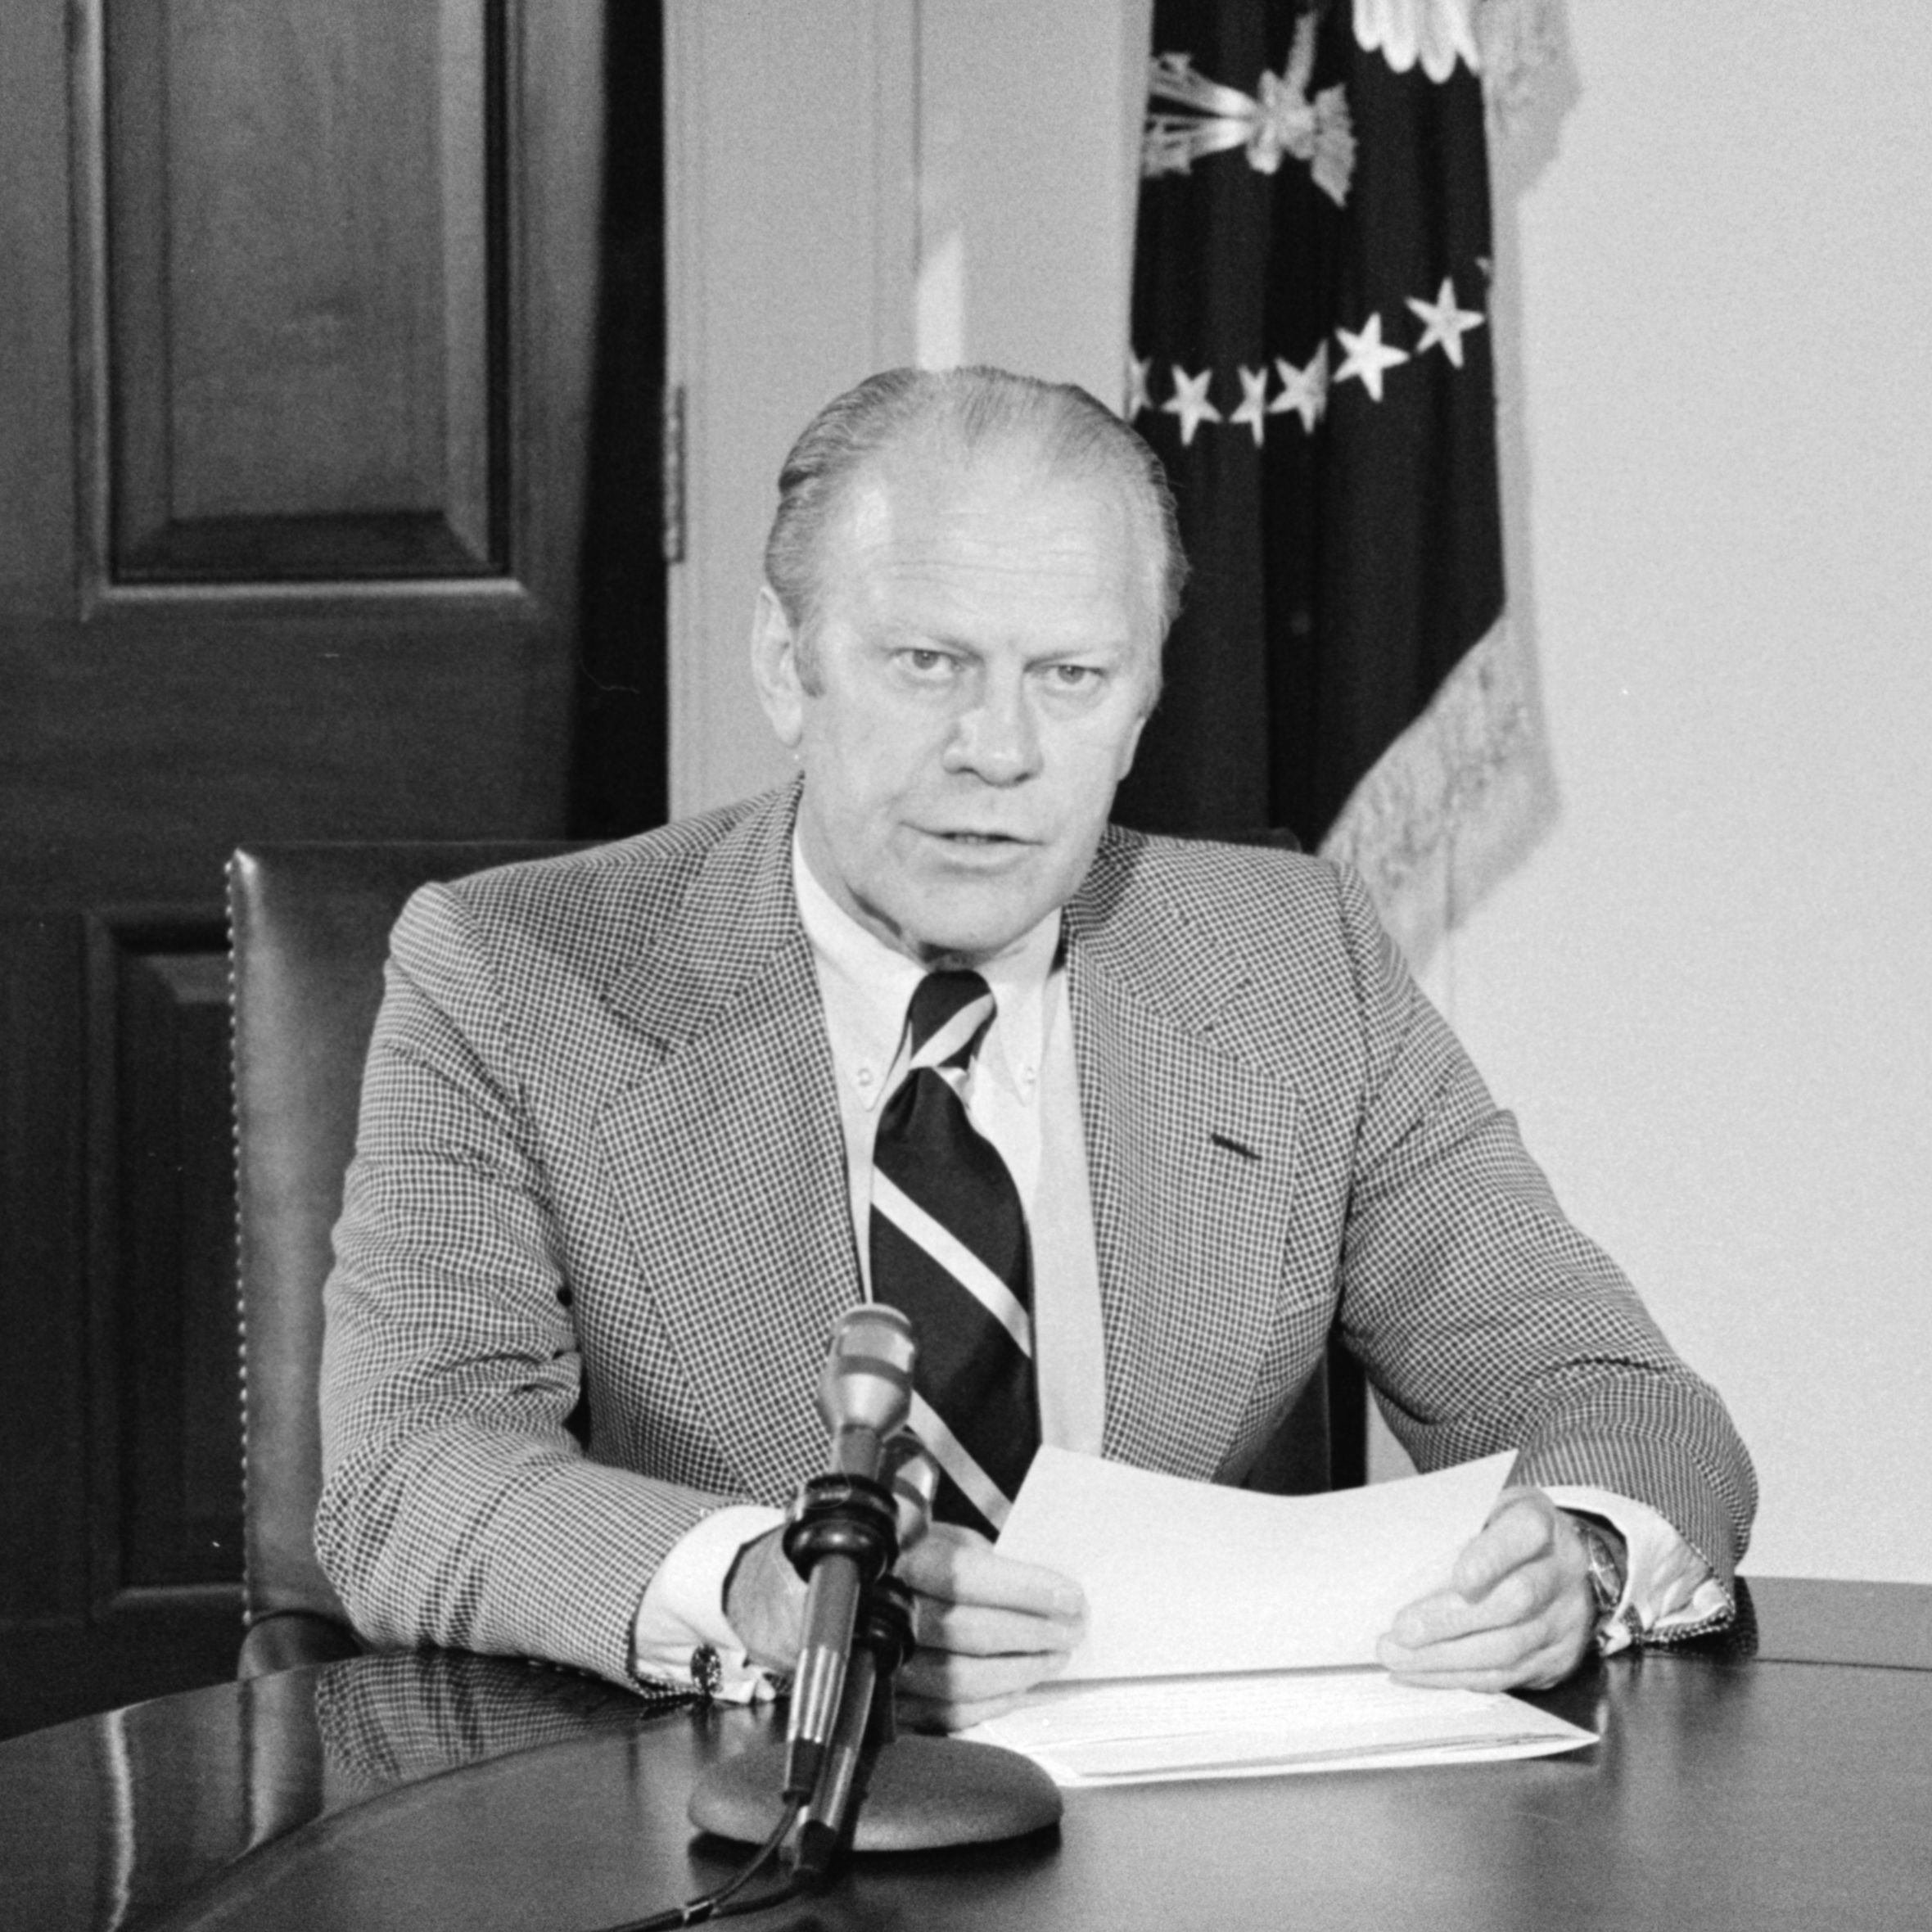 president gerald ford Gerald r ford was thrust into the presidency in 1974 in the wake of the watergate scandal, but lost his own bid for election after pardoning president richard m nixon.